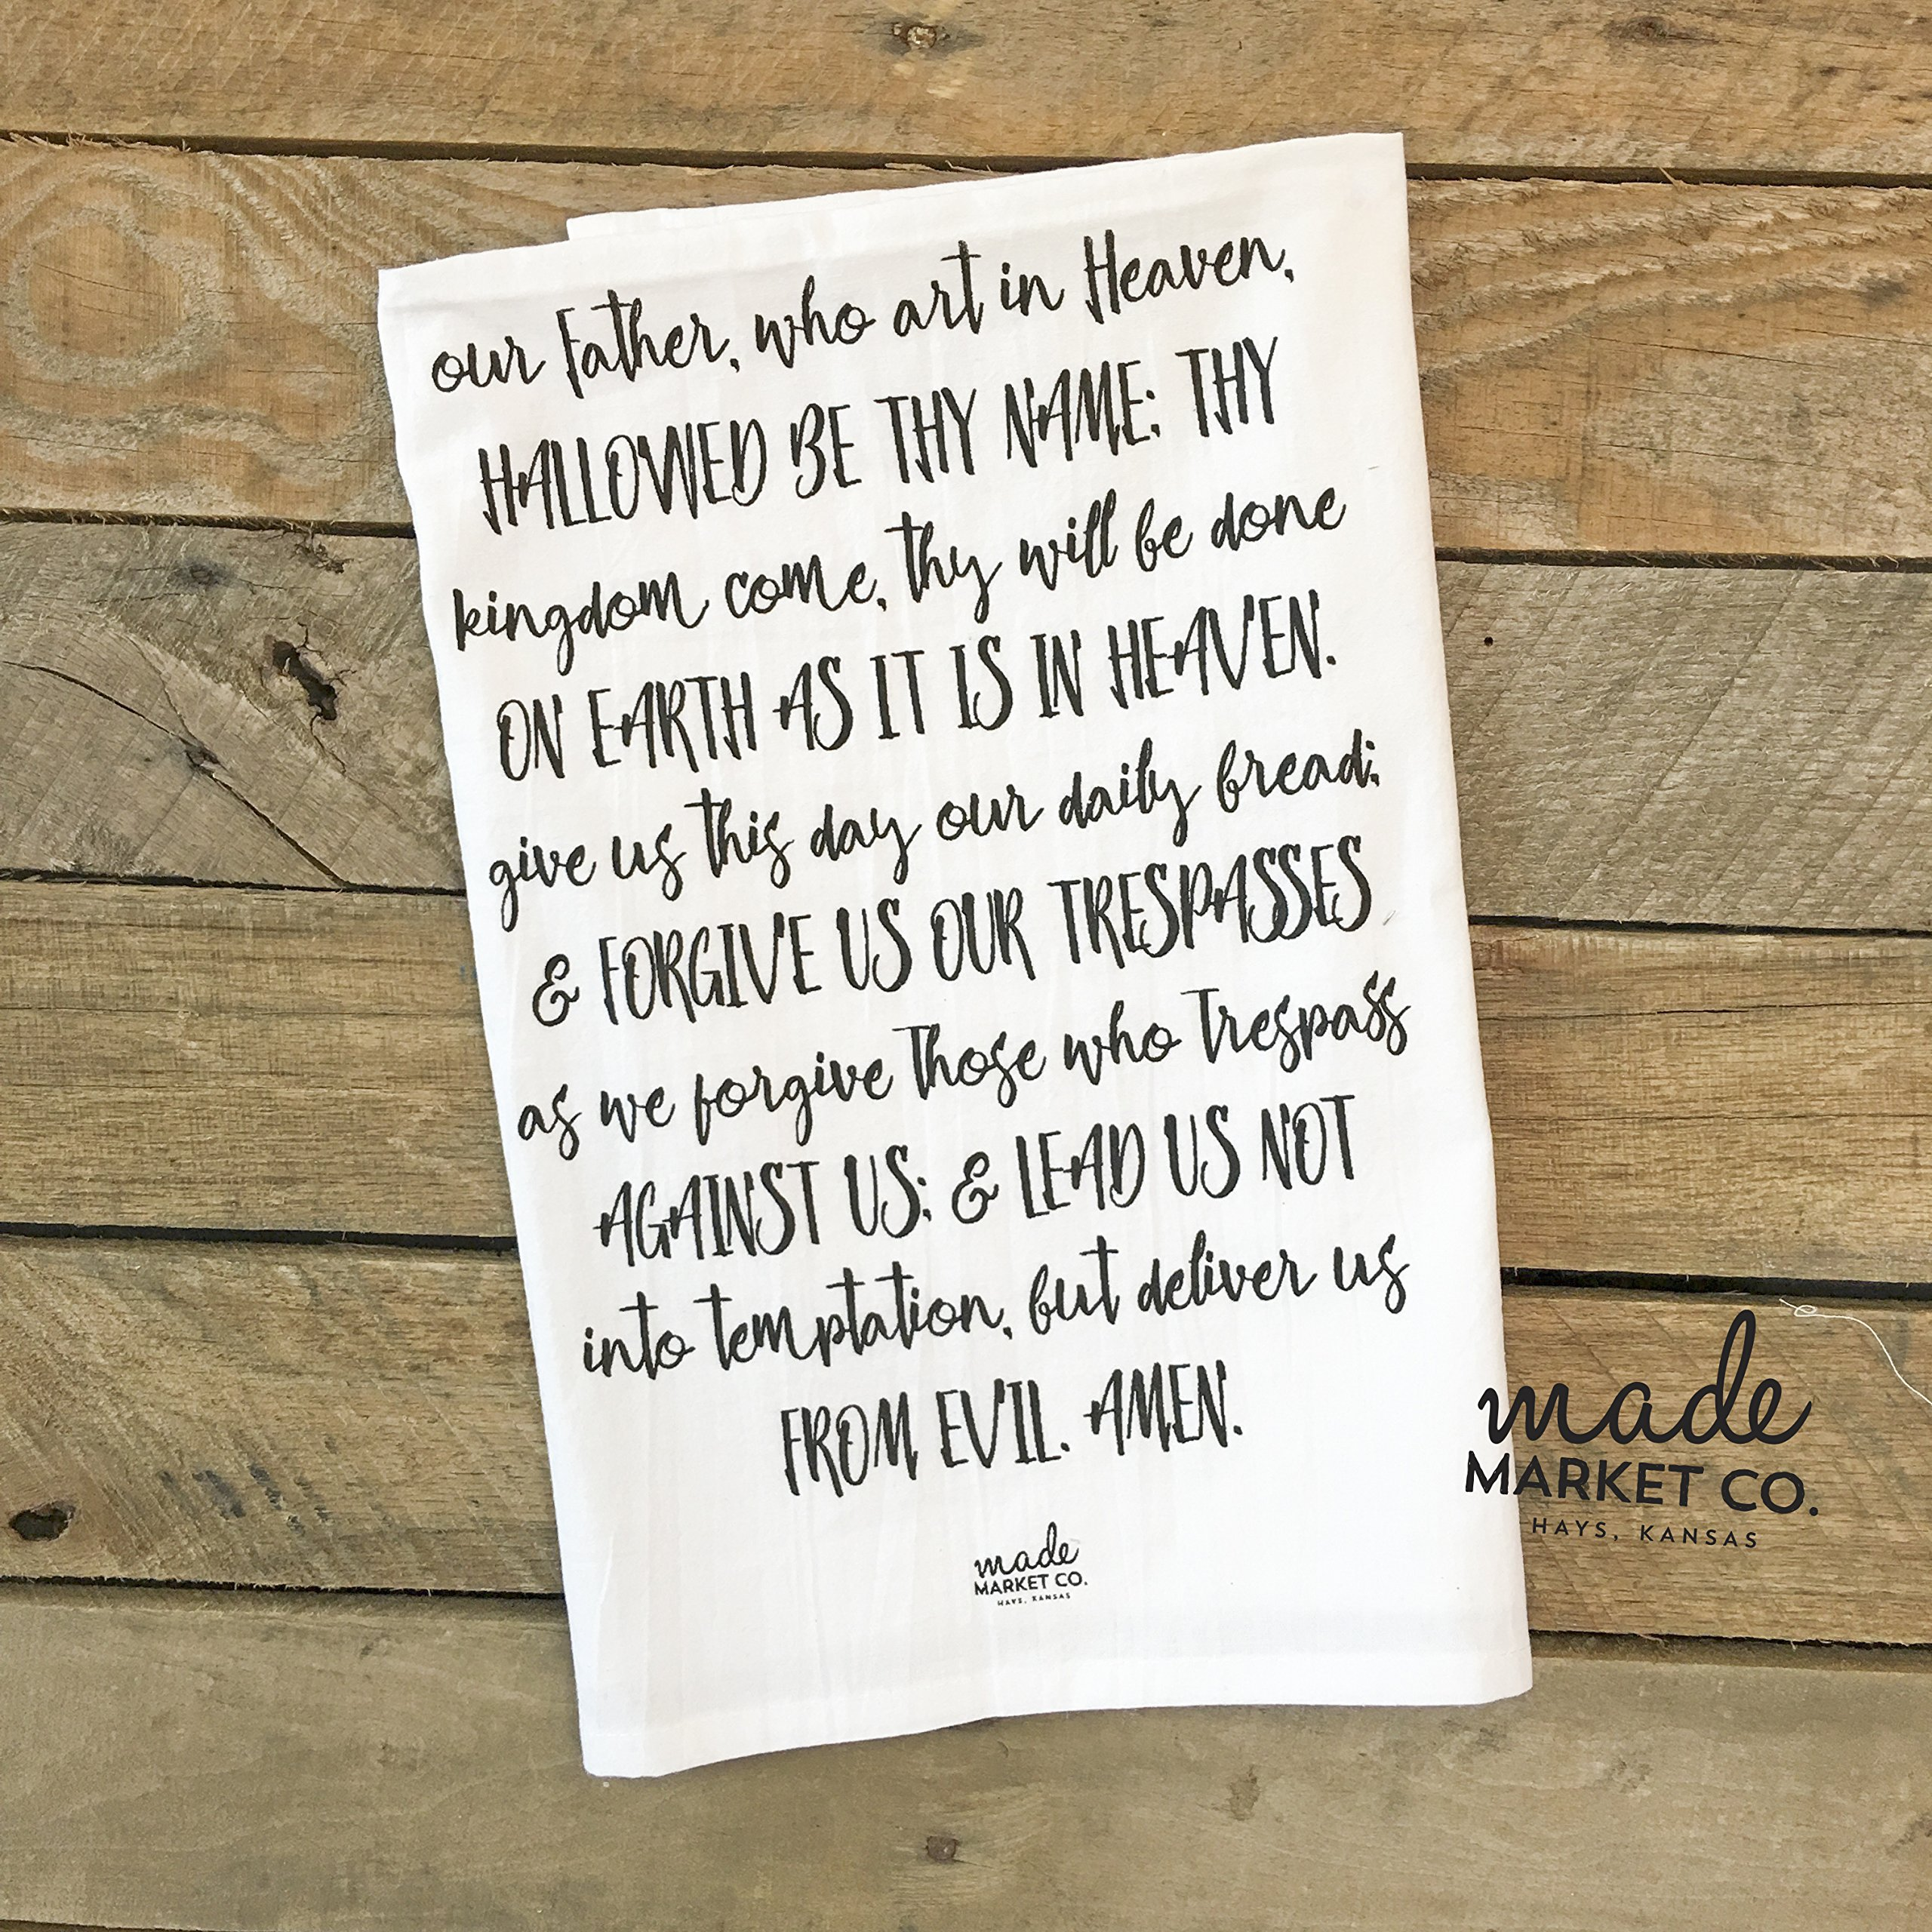 Our Father Prayer Tea Towel, Gift for Her, Kitchen Linens Decor Bathroom, Best Seller, Most Popular Item